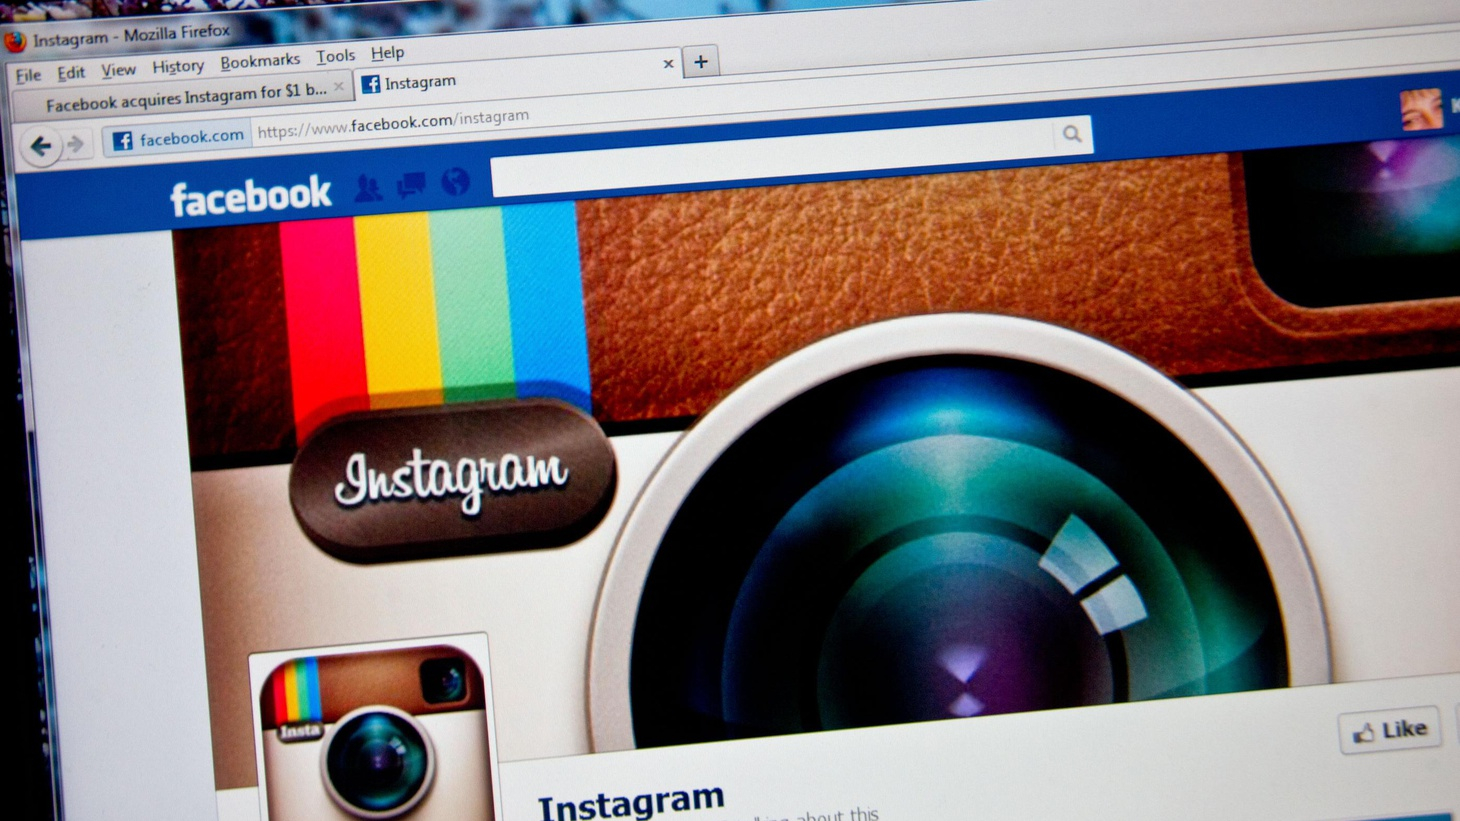 Instagram has emerged as a kind of anti-Facebook. Now that Facebook is buying Instagram for a billion dollars, what changes might be in store for the online universe?